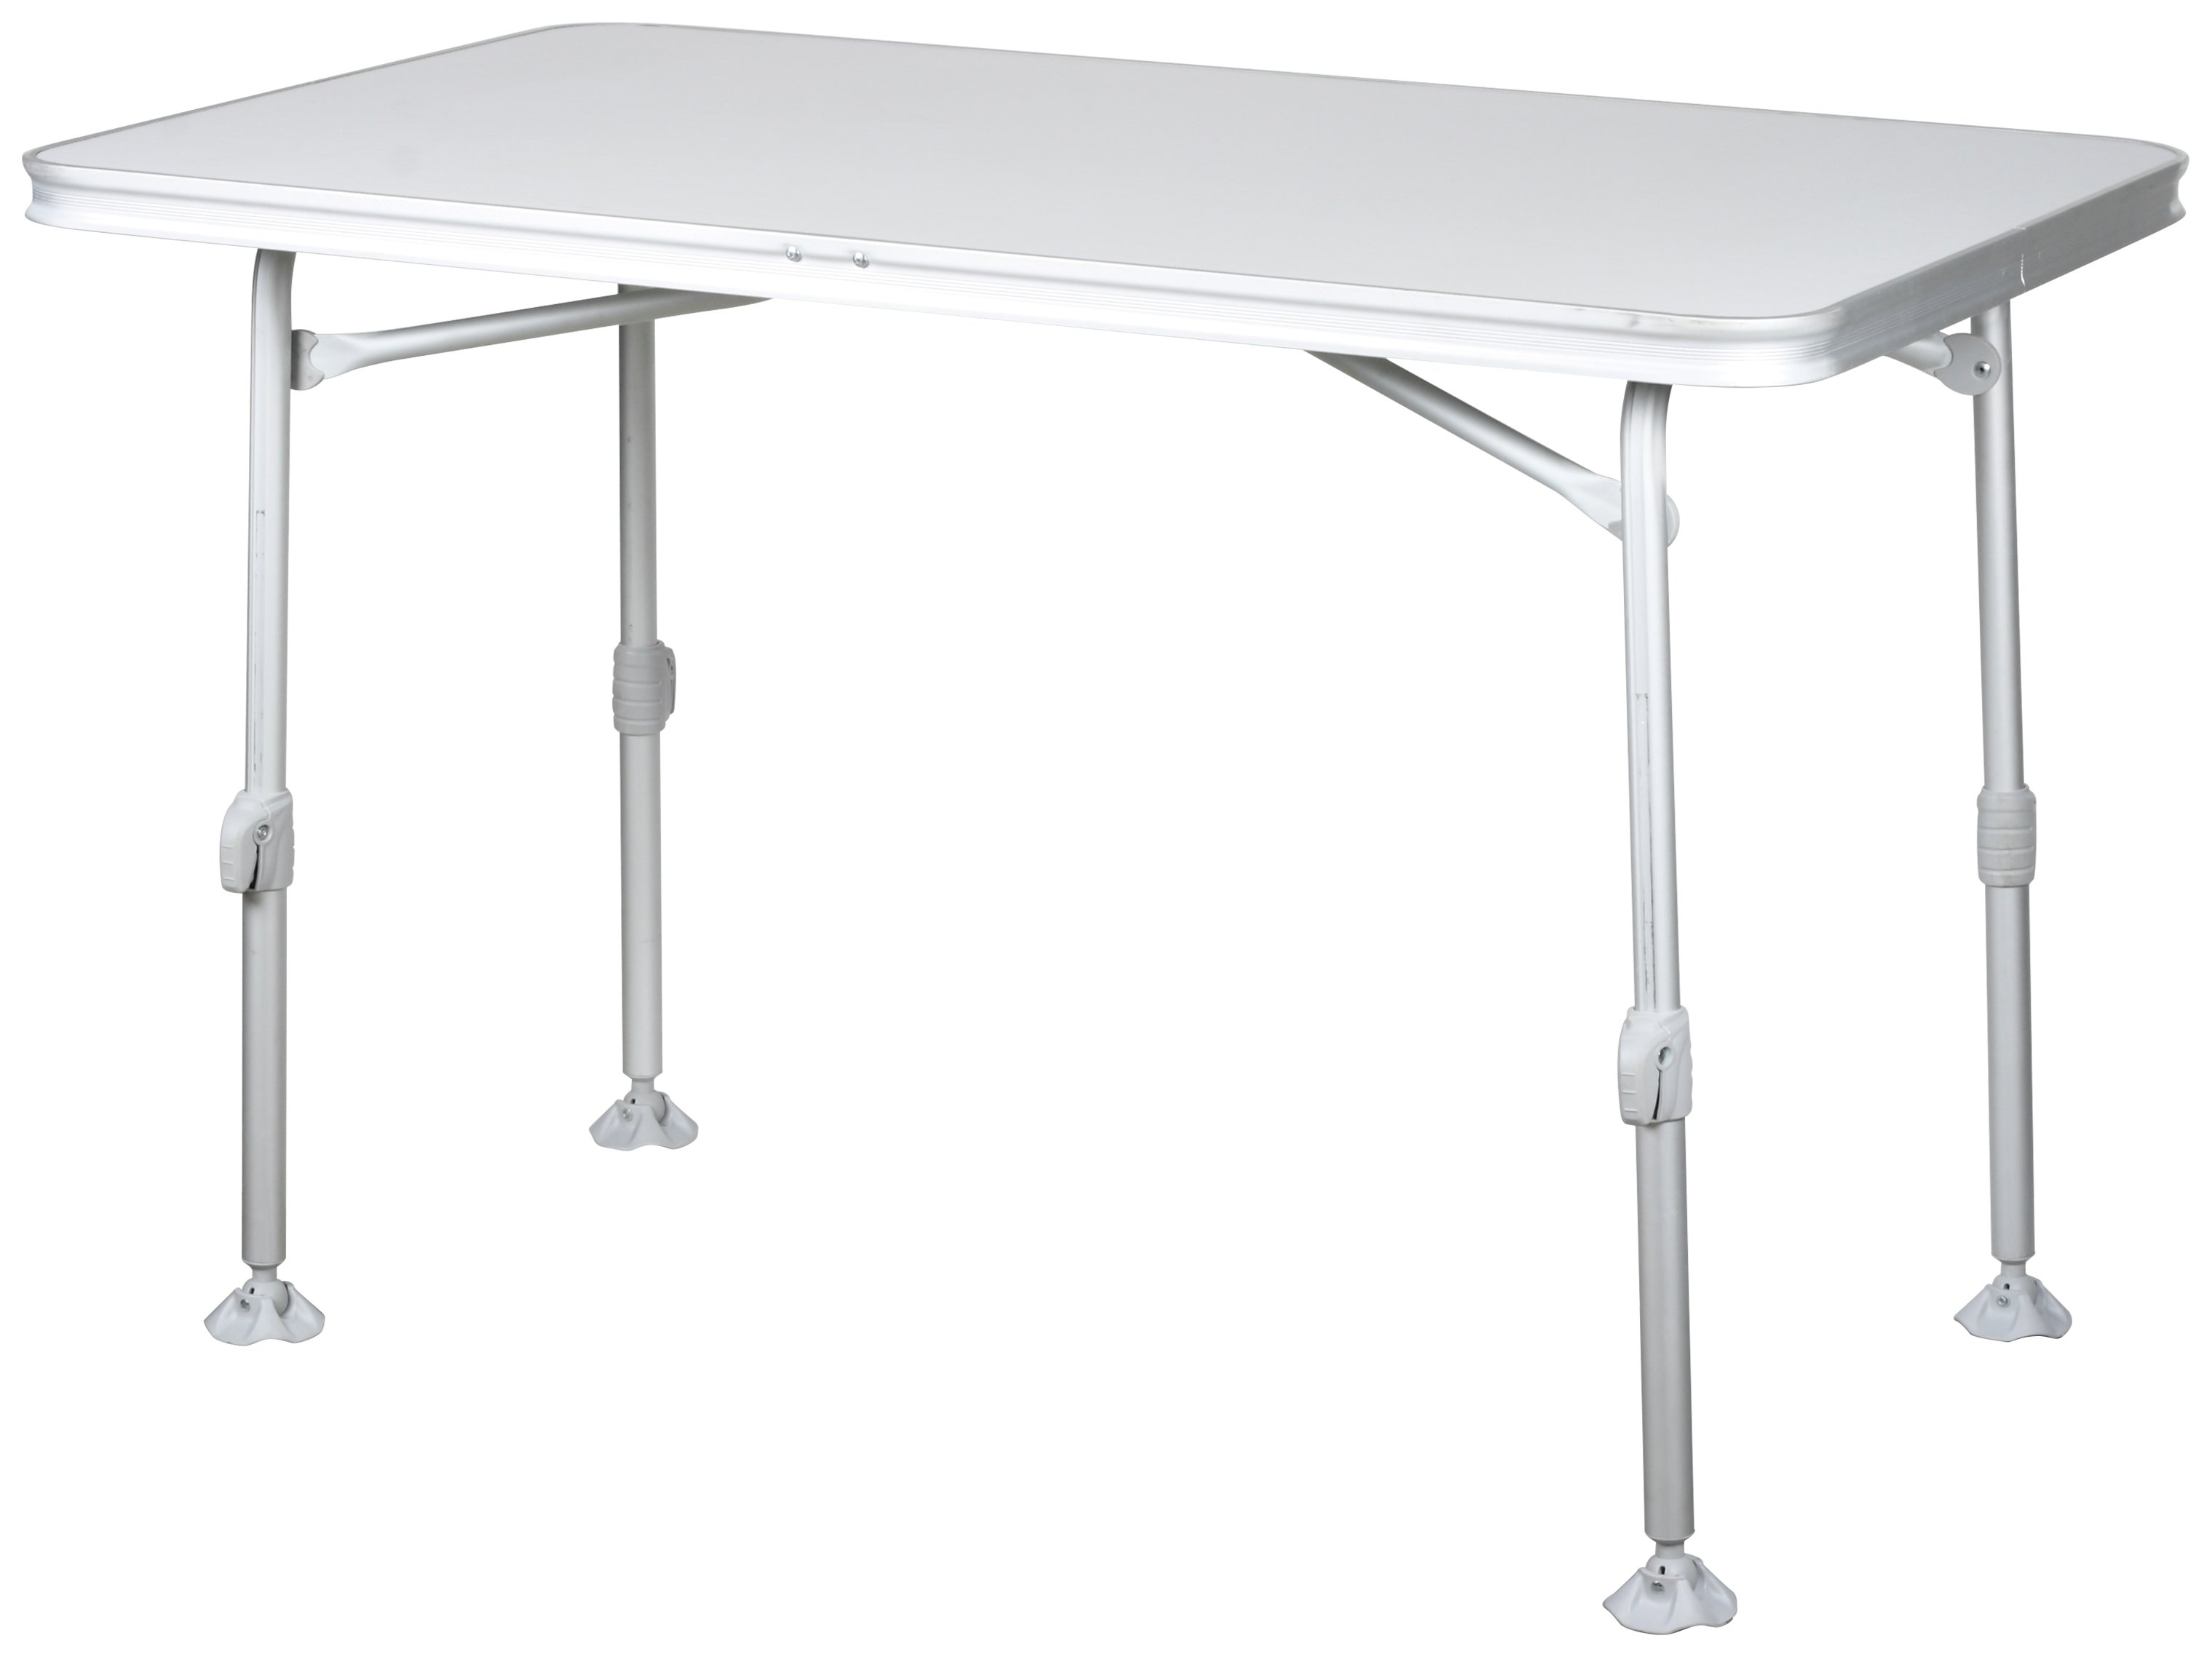 Tristar height adjustable camping table - Camping table adjustable height ...